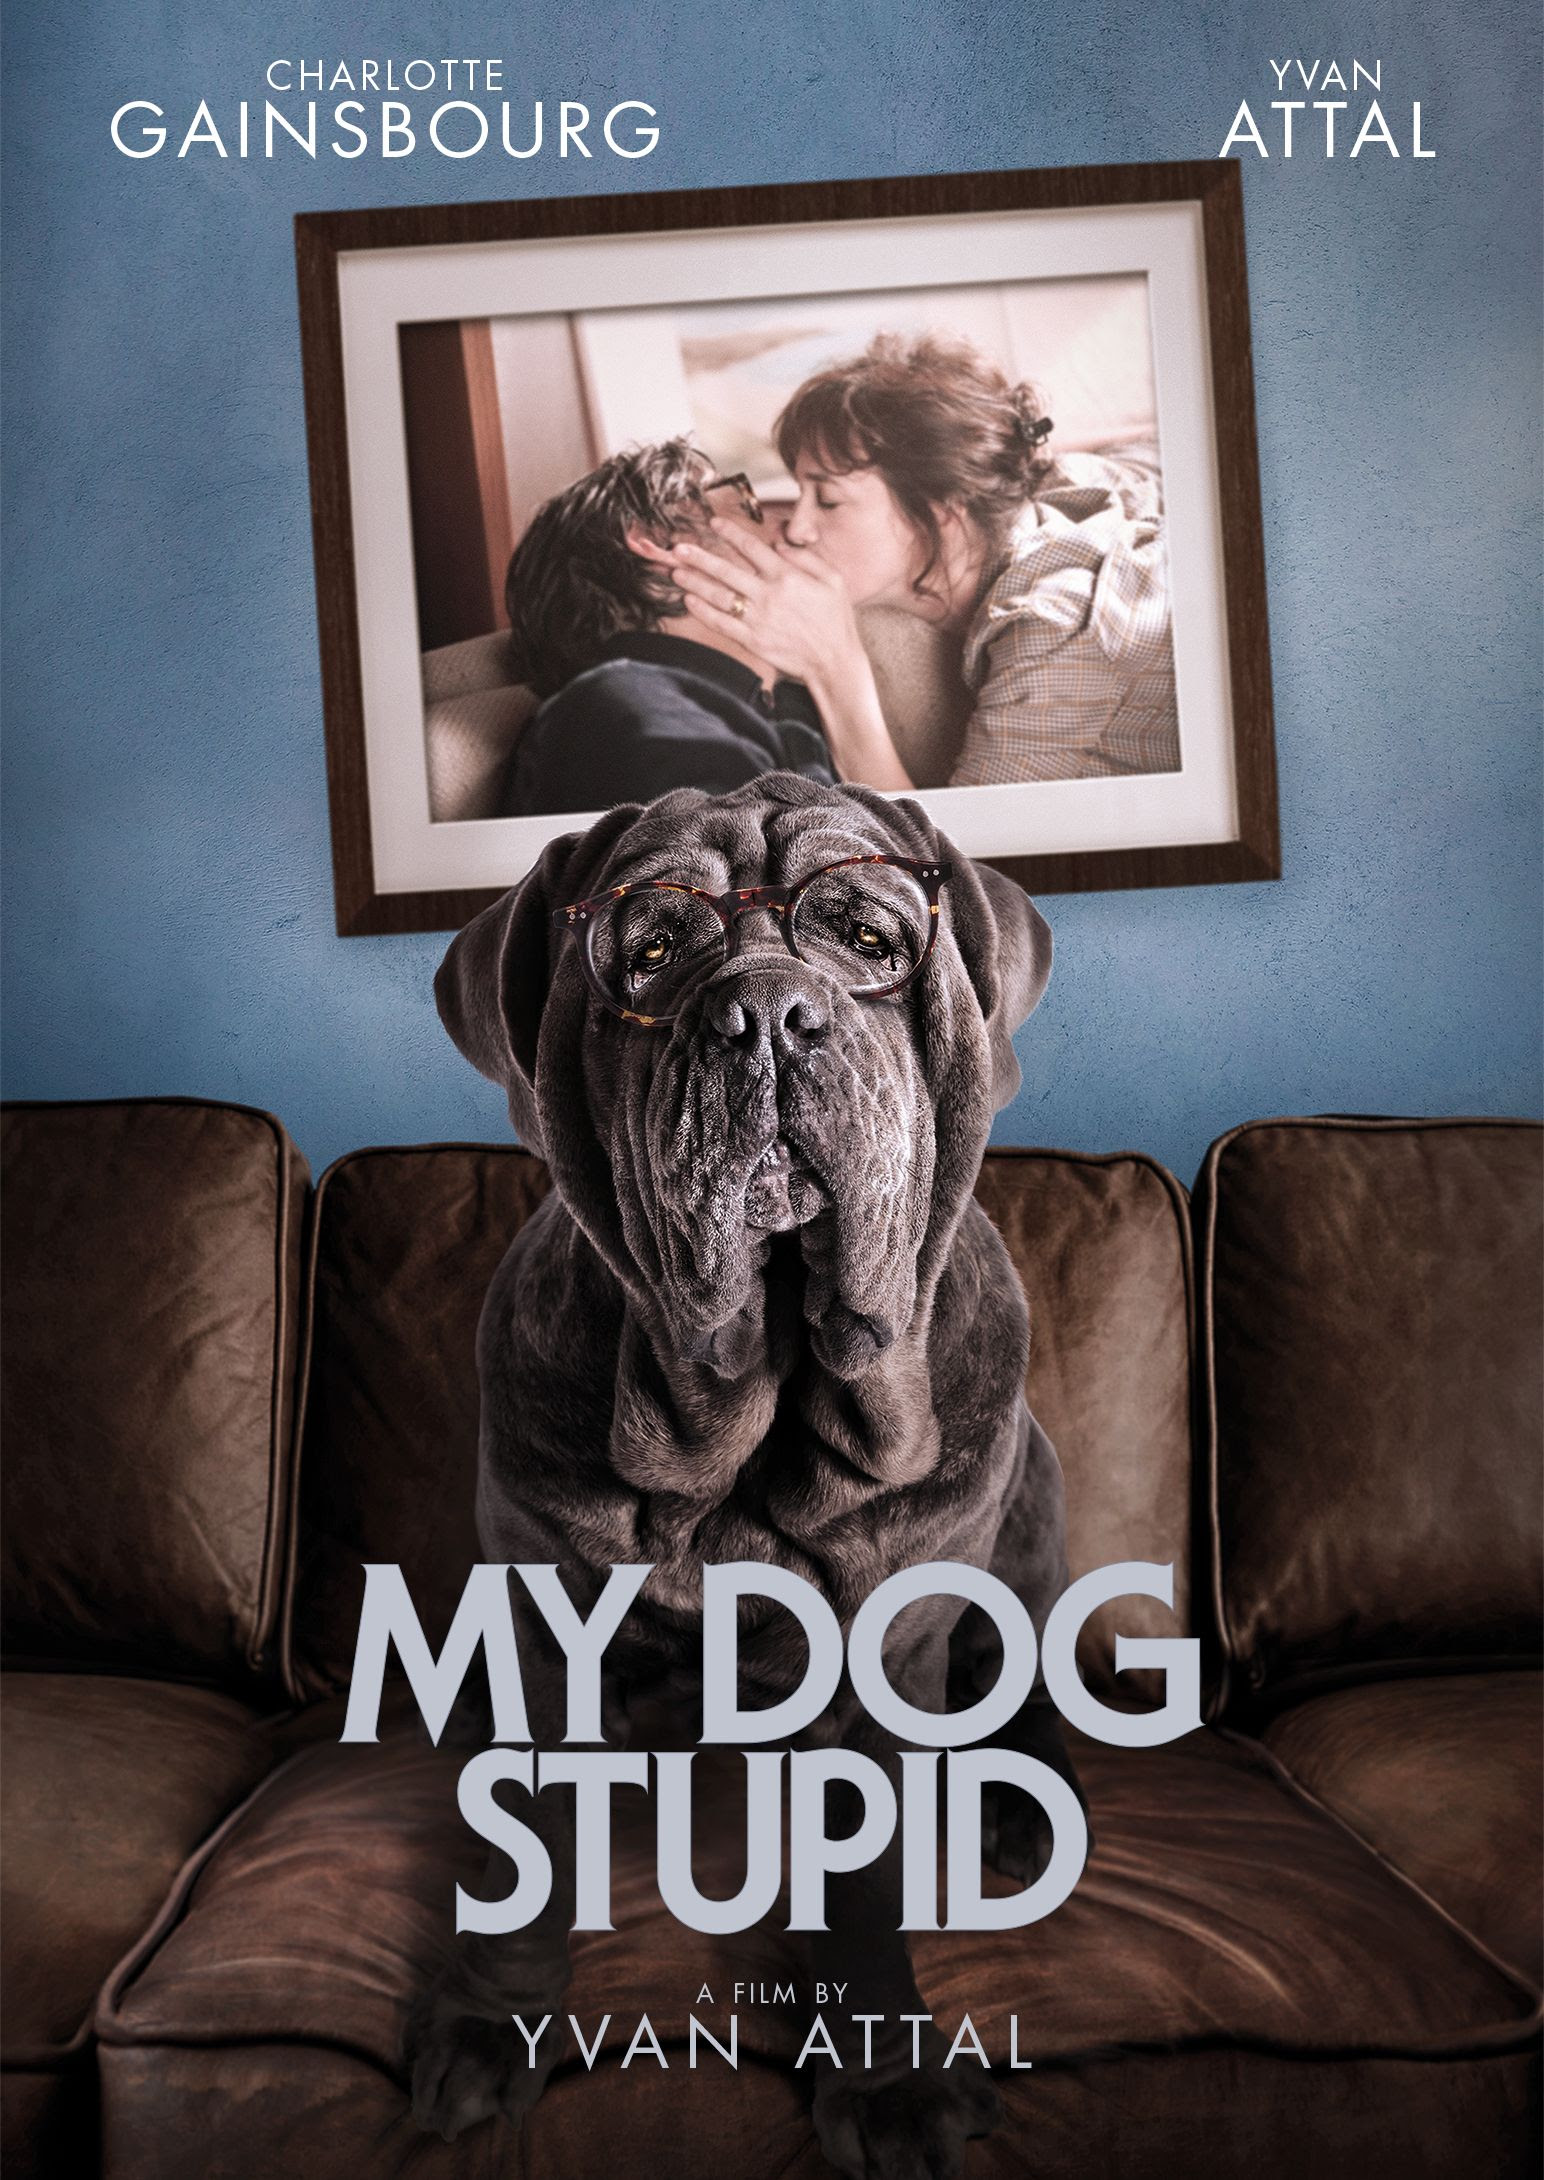 Poster for My Dog Stupid